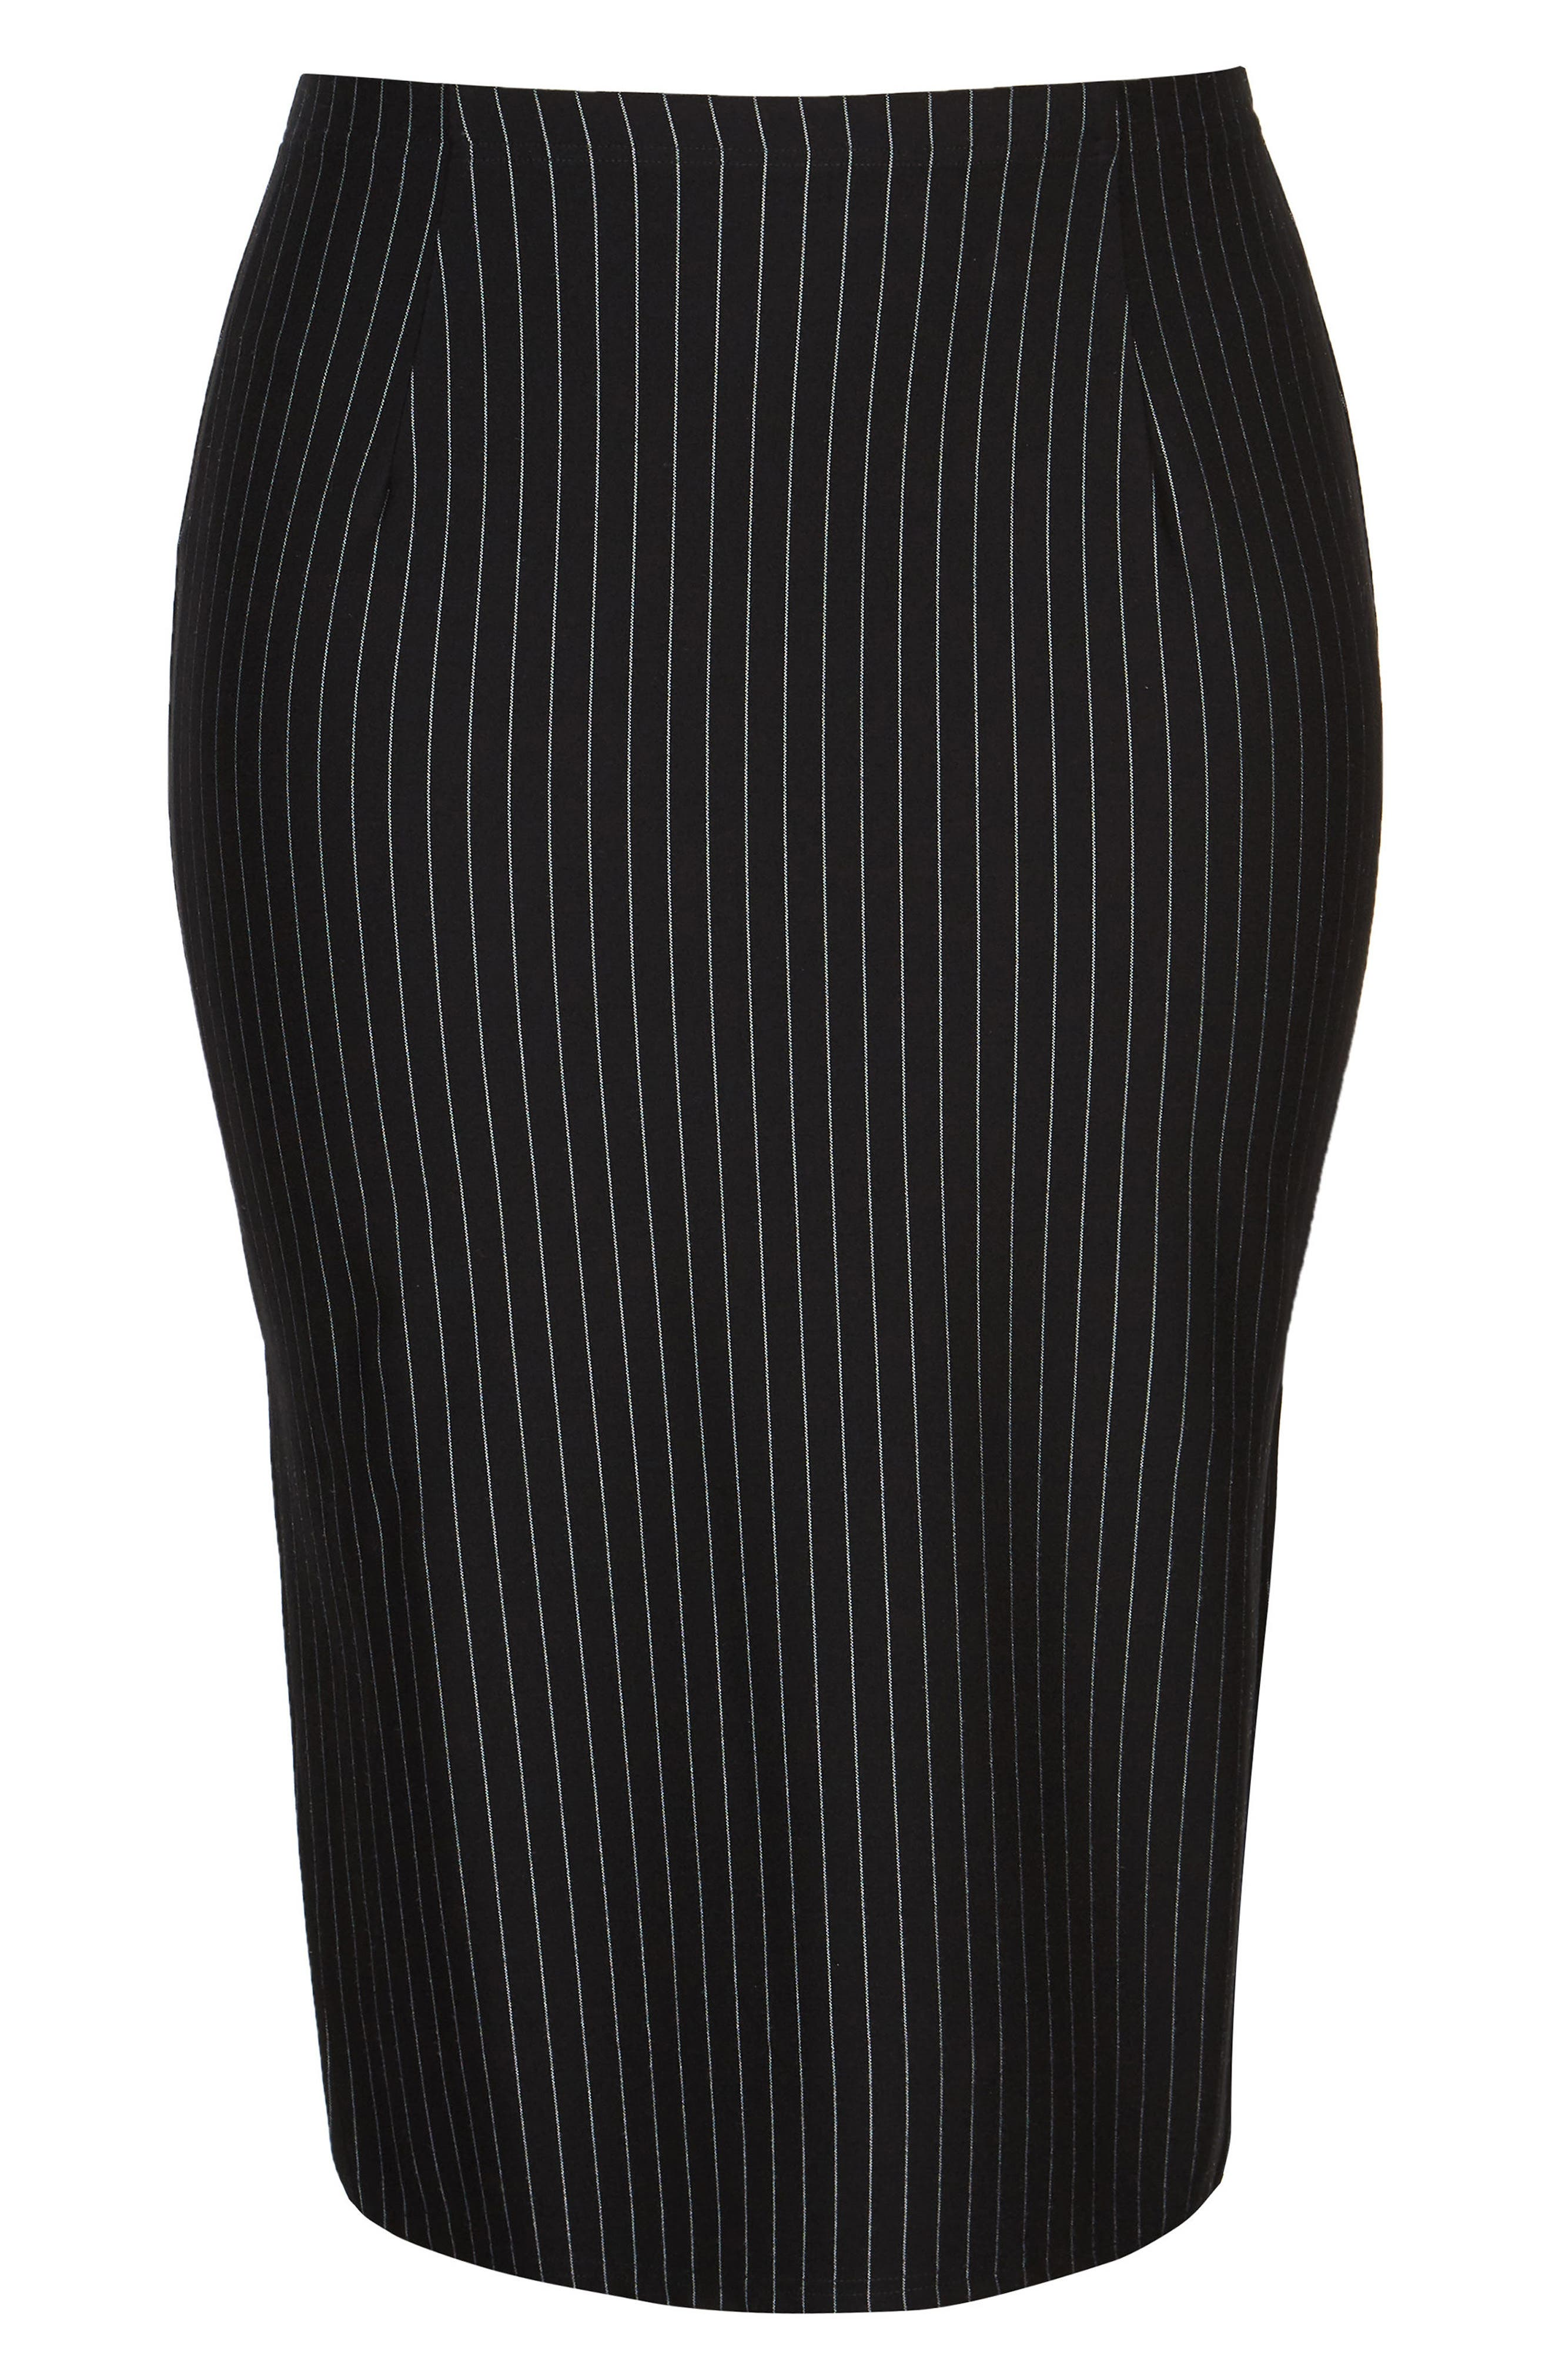 Chic City On Point Pencil skirt,                             Alternate thumbnail 3, color,                             001